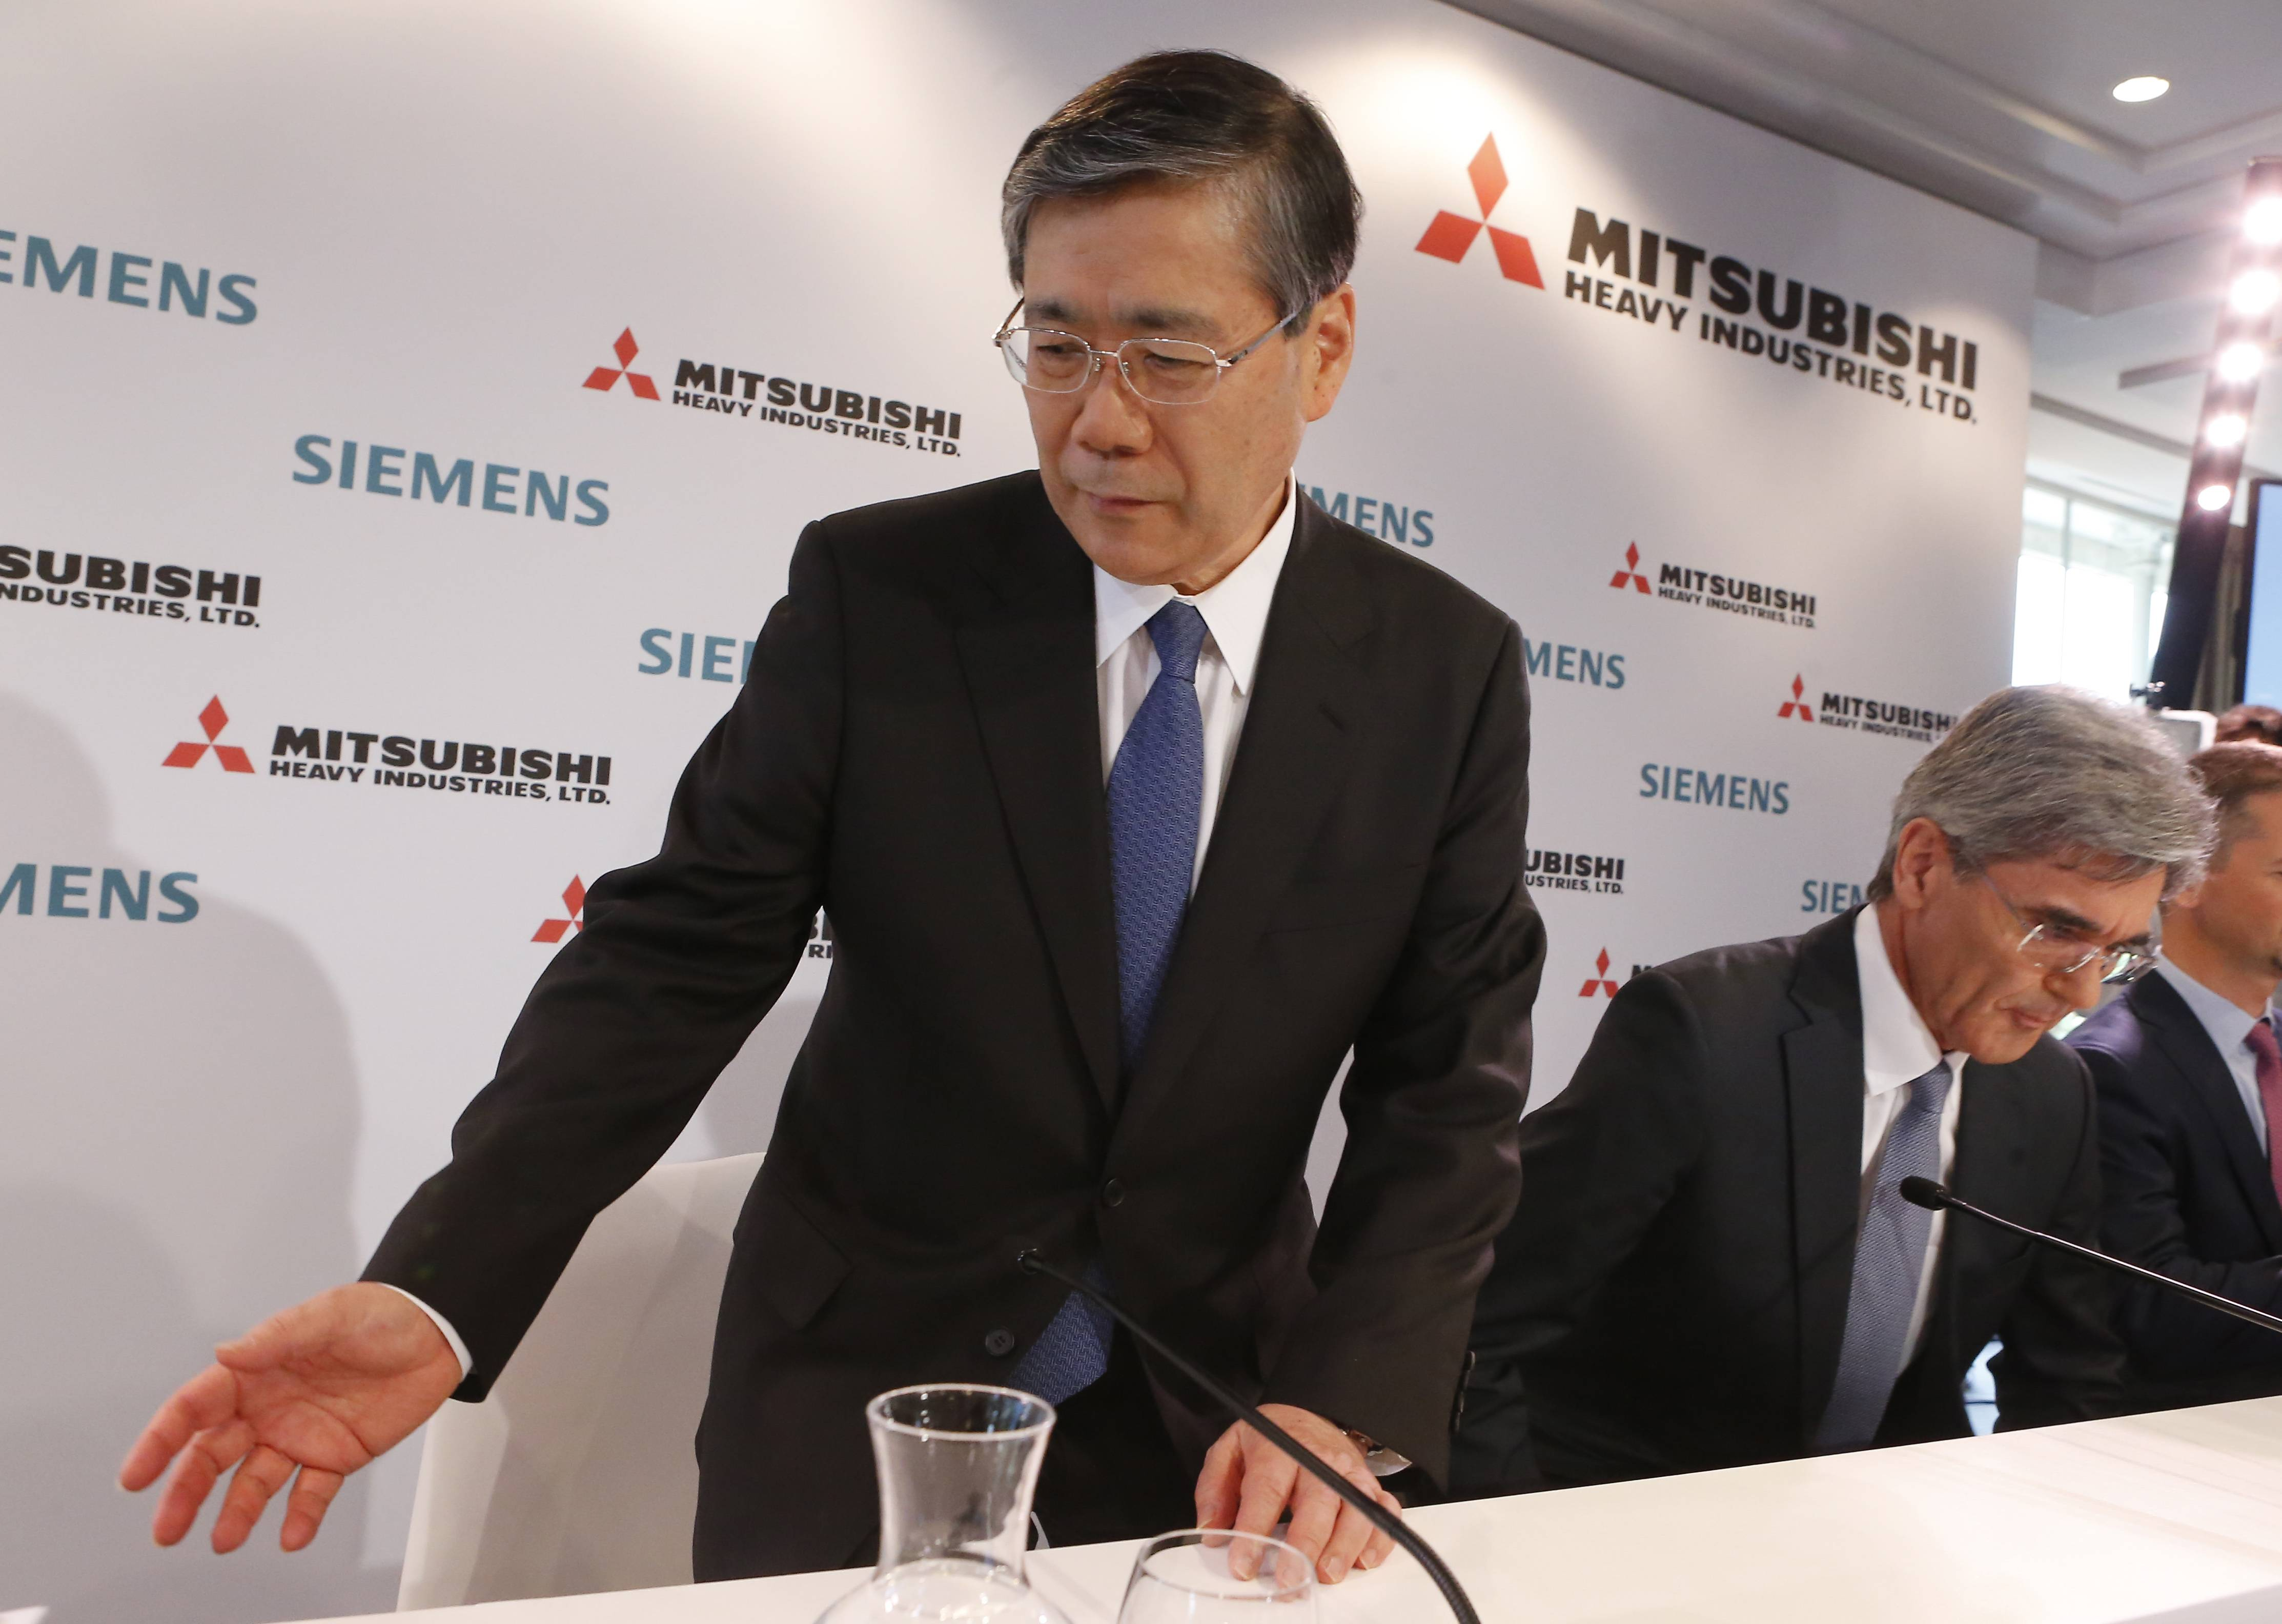 Siemens CEO Joe Kaeser, right, and Mitsubishi CEO Shunichi Miyanaga, arrive Tuesday for their press conference in Paris. The CEOs from Siemens and Mitsubishi Heavy Industries met with the French president to promote their joint offer to buy parts French engineering company Alstom and head off a rival bid from General Electric Co.